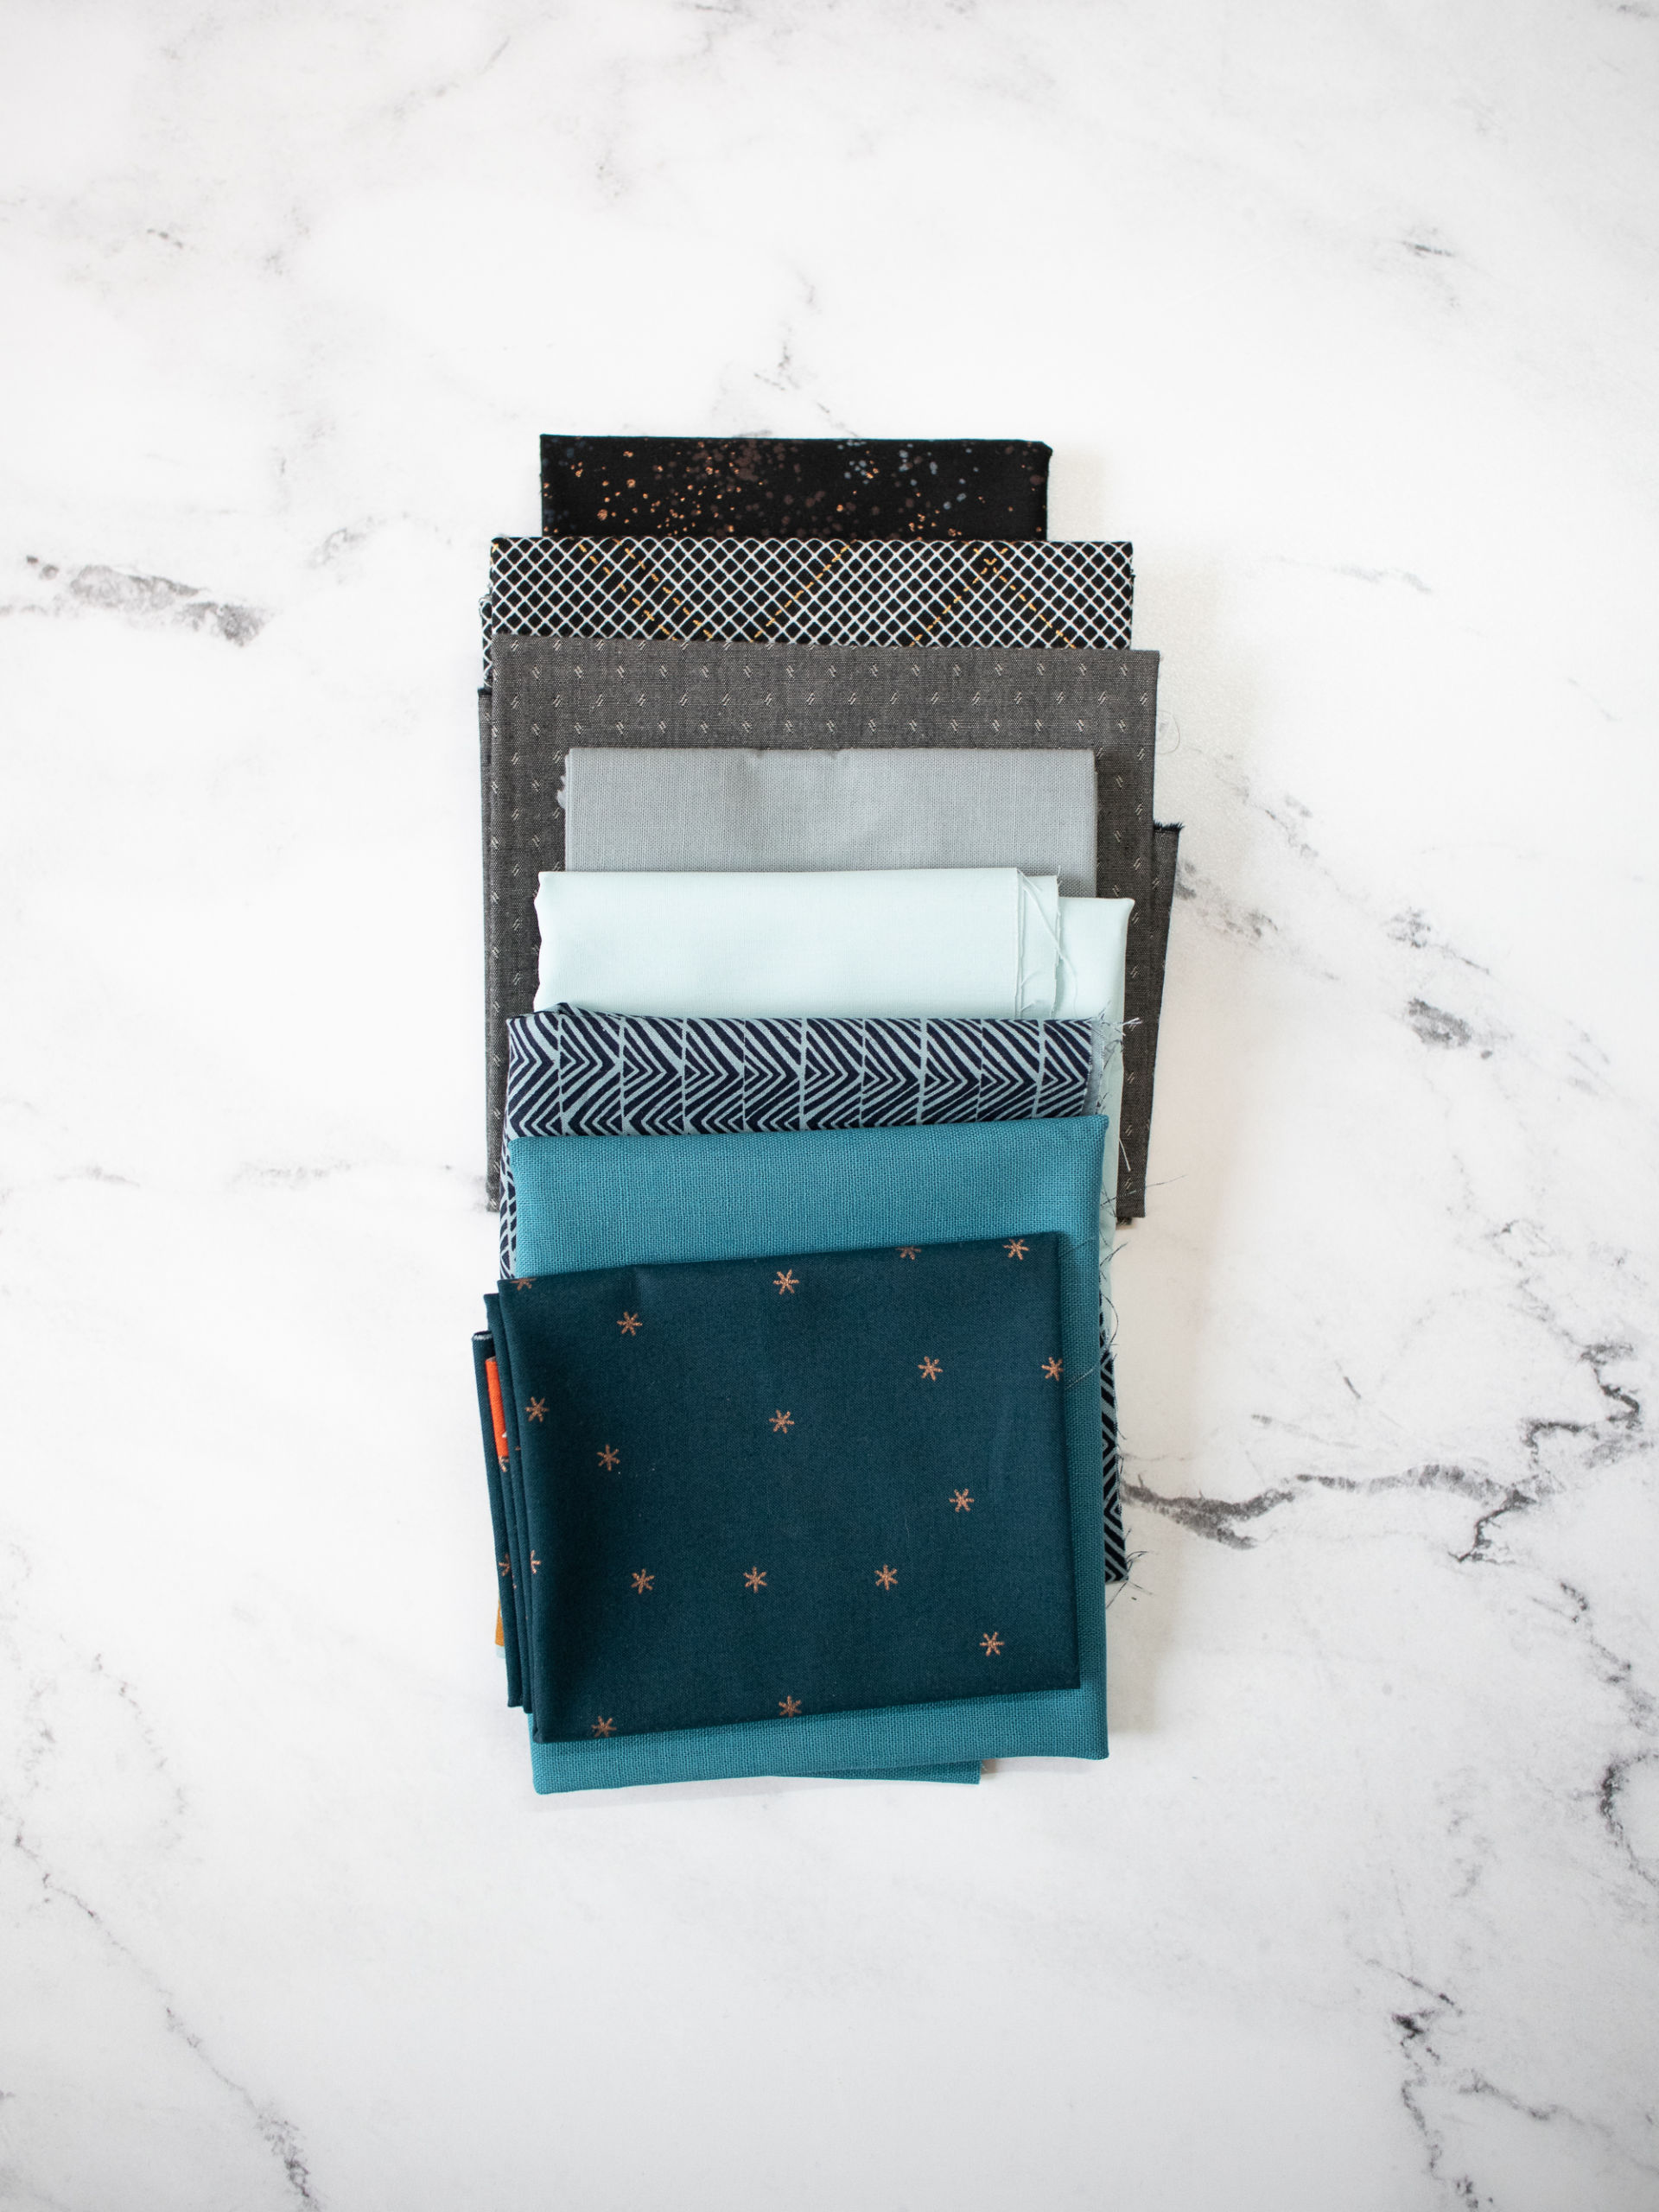 The ultimate guide to folding fabric of different sizes to neatly organize your fabric stash. Step by step photos and instructions show you how to fold fat quarters, half yards, and yardage so you can get started on cleaning your sewing studio. suzyquilts.com #fabricorganization #sewing